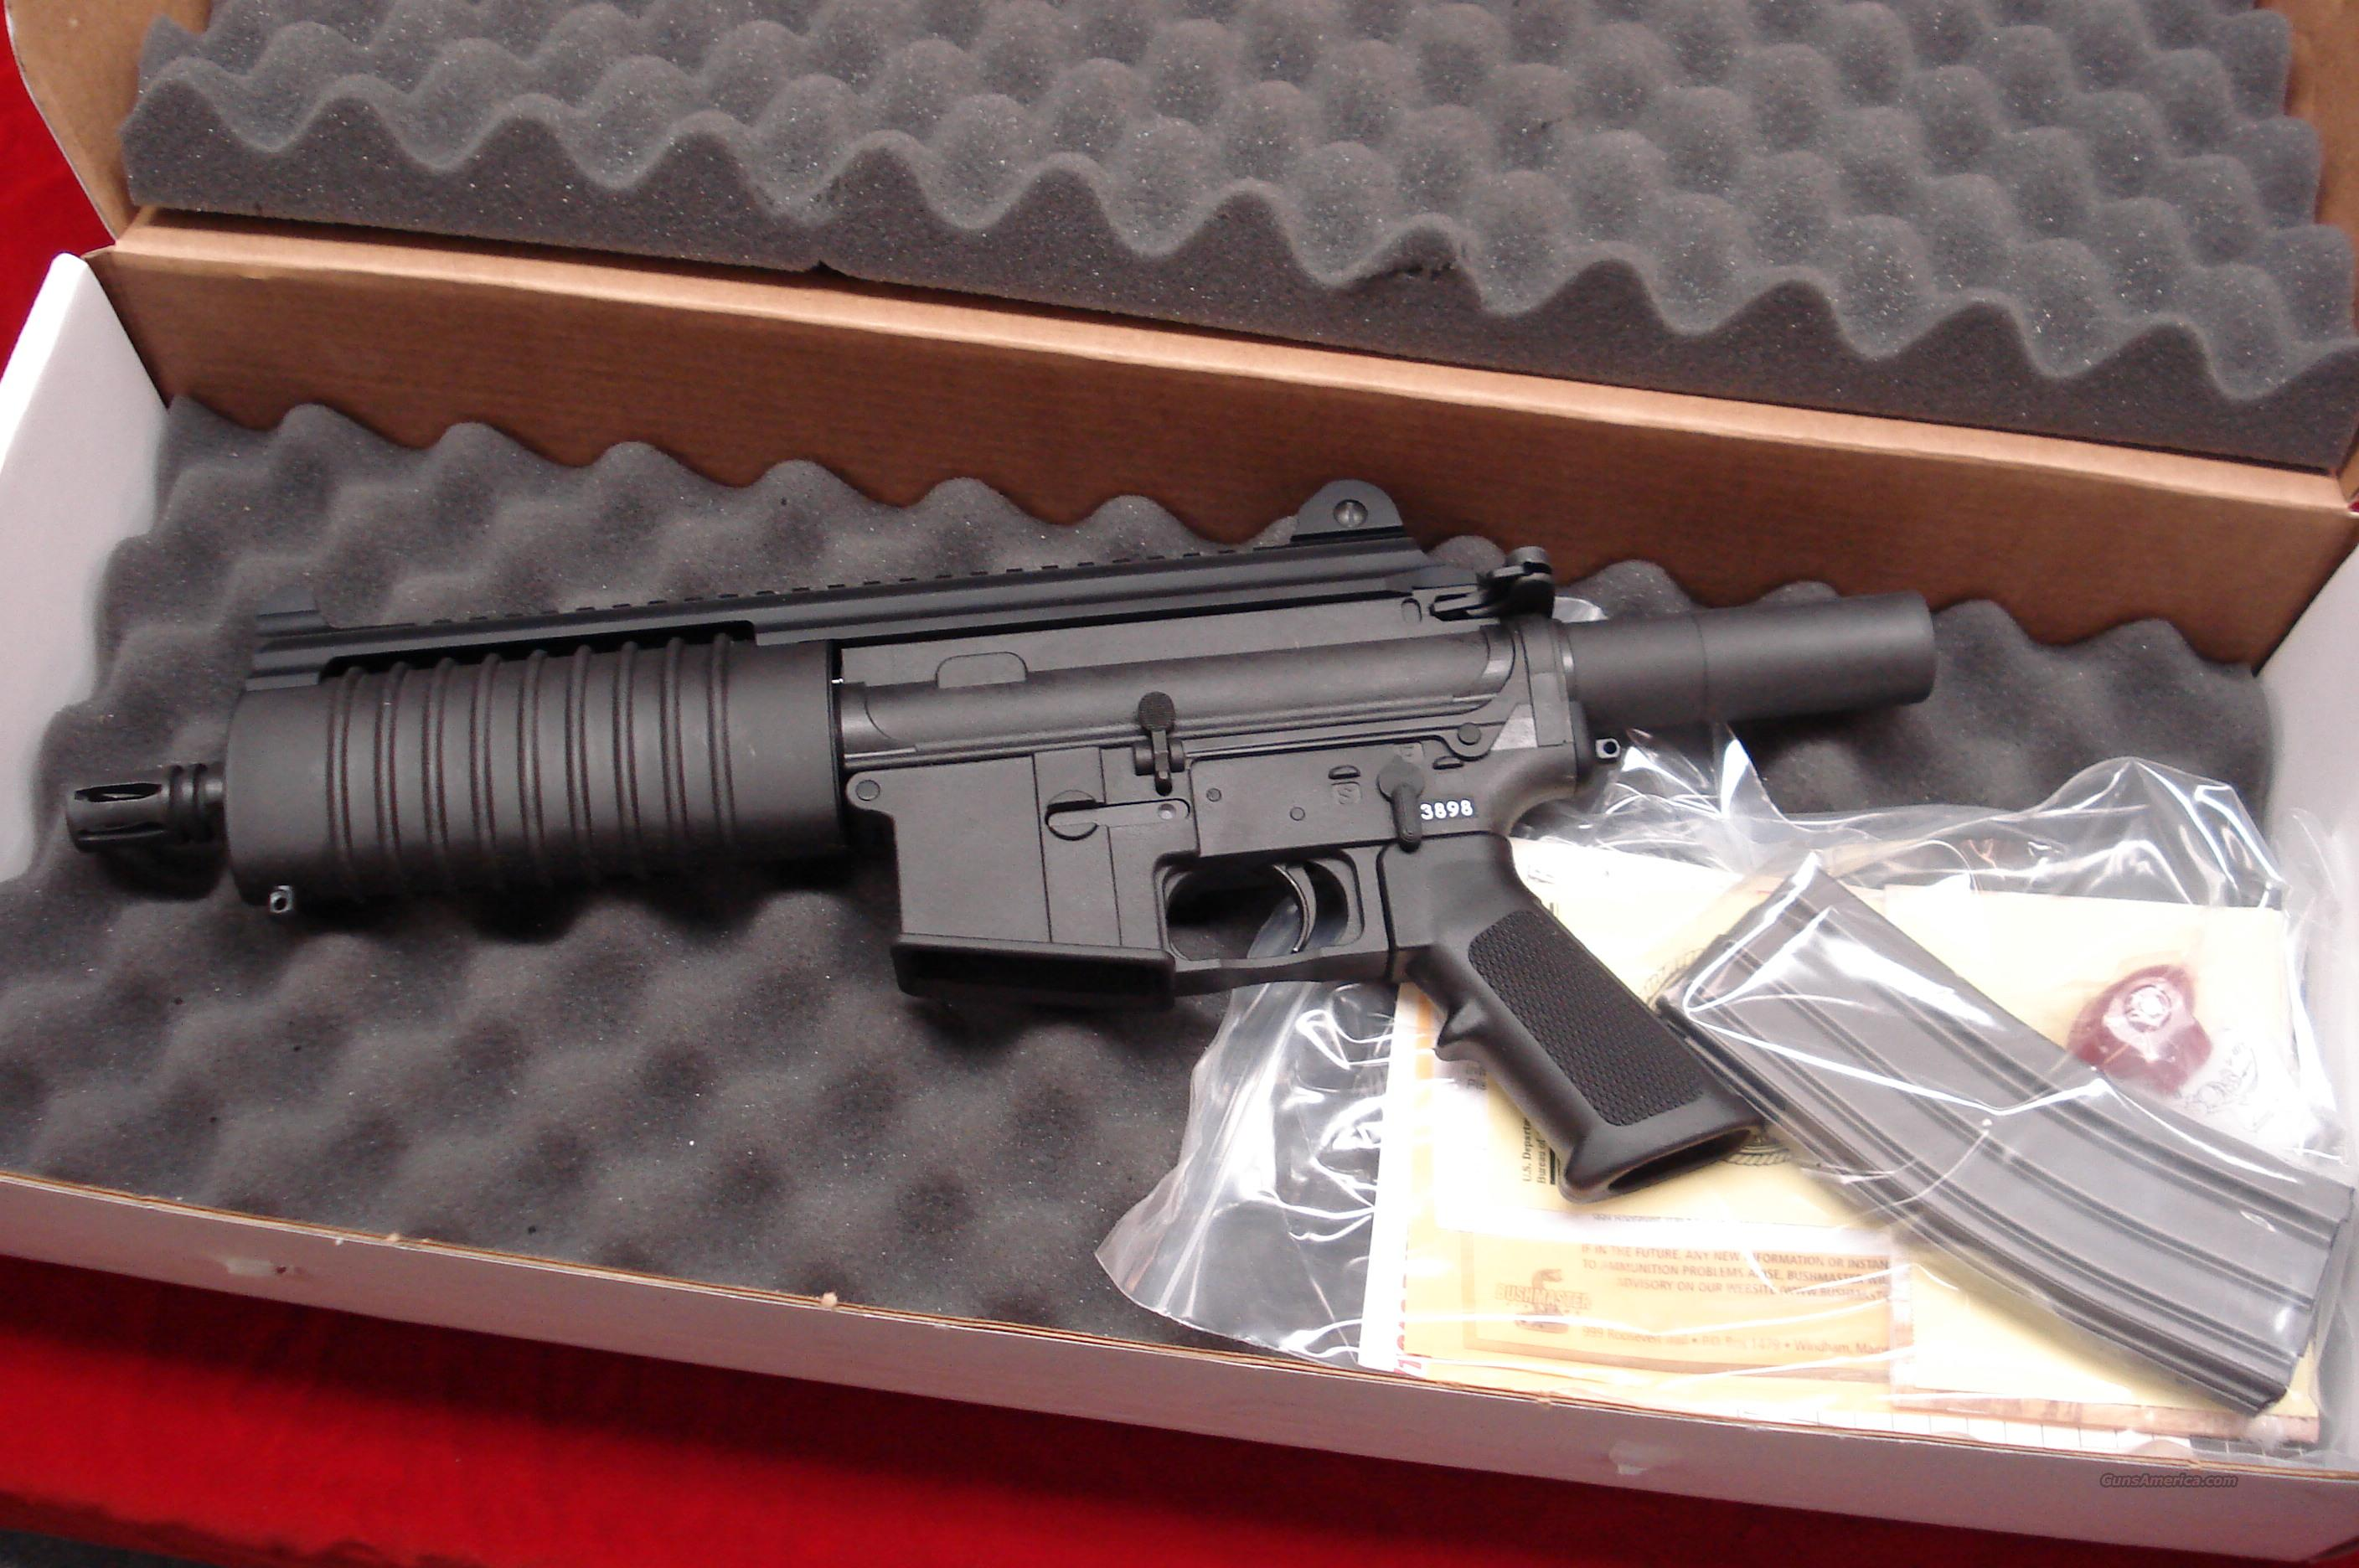 BUSHMASTER CARBON 15 556/ .223 CAL. PISTOL NEW IN THE BOX  Guns > Pistols > Bushmaster Pistols